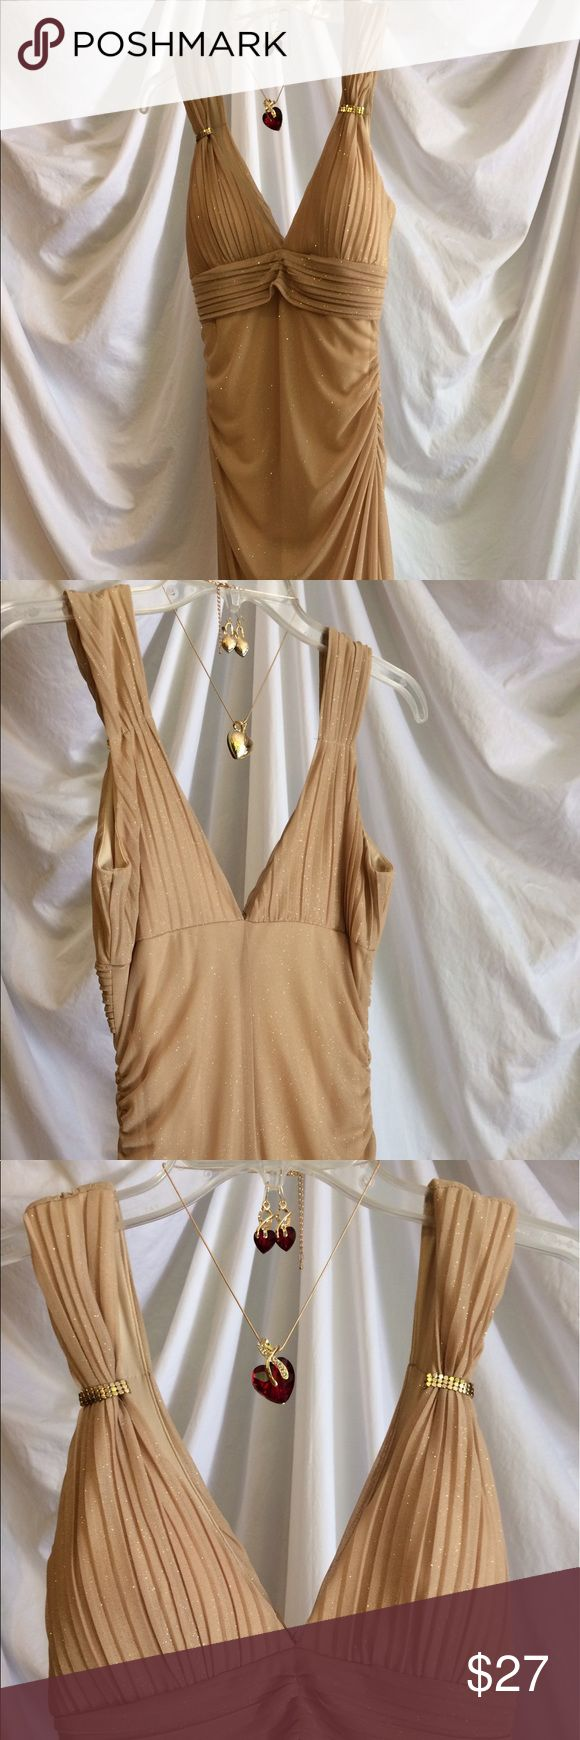 """Gold gown + wishbone heart jewelry 58"""" from shoulder to hem, 28"""" waist, polyester/spandex, fish hook earrings, 18"""" pendant Dresses Maxi"""